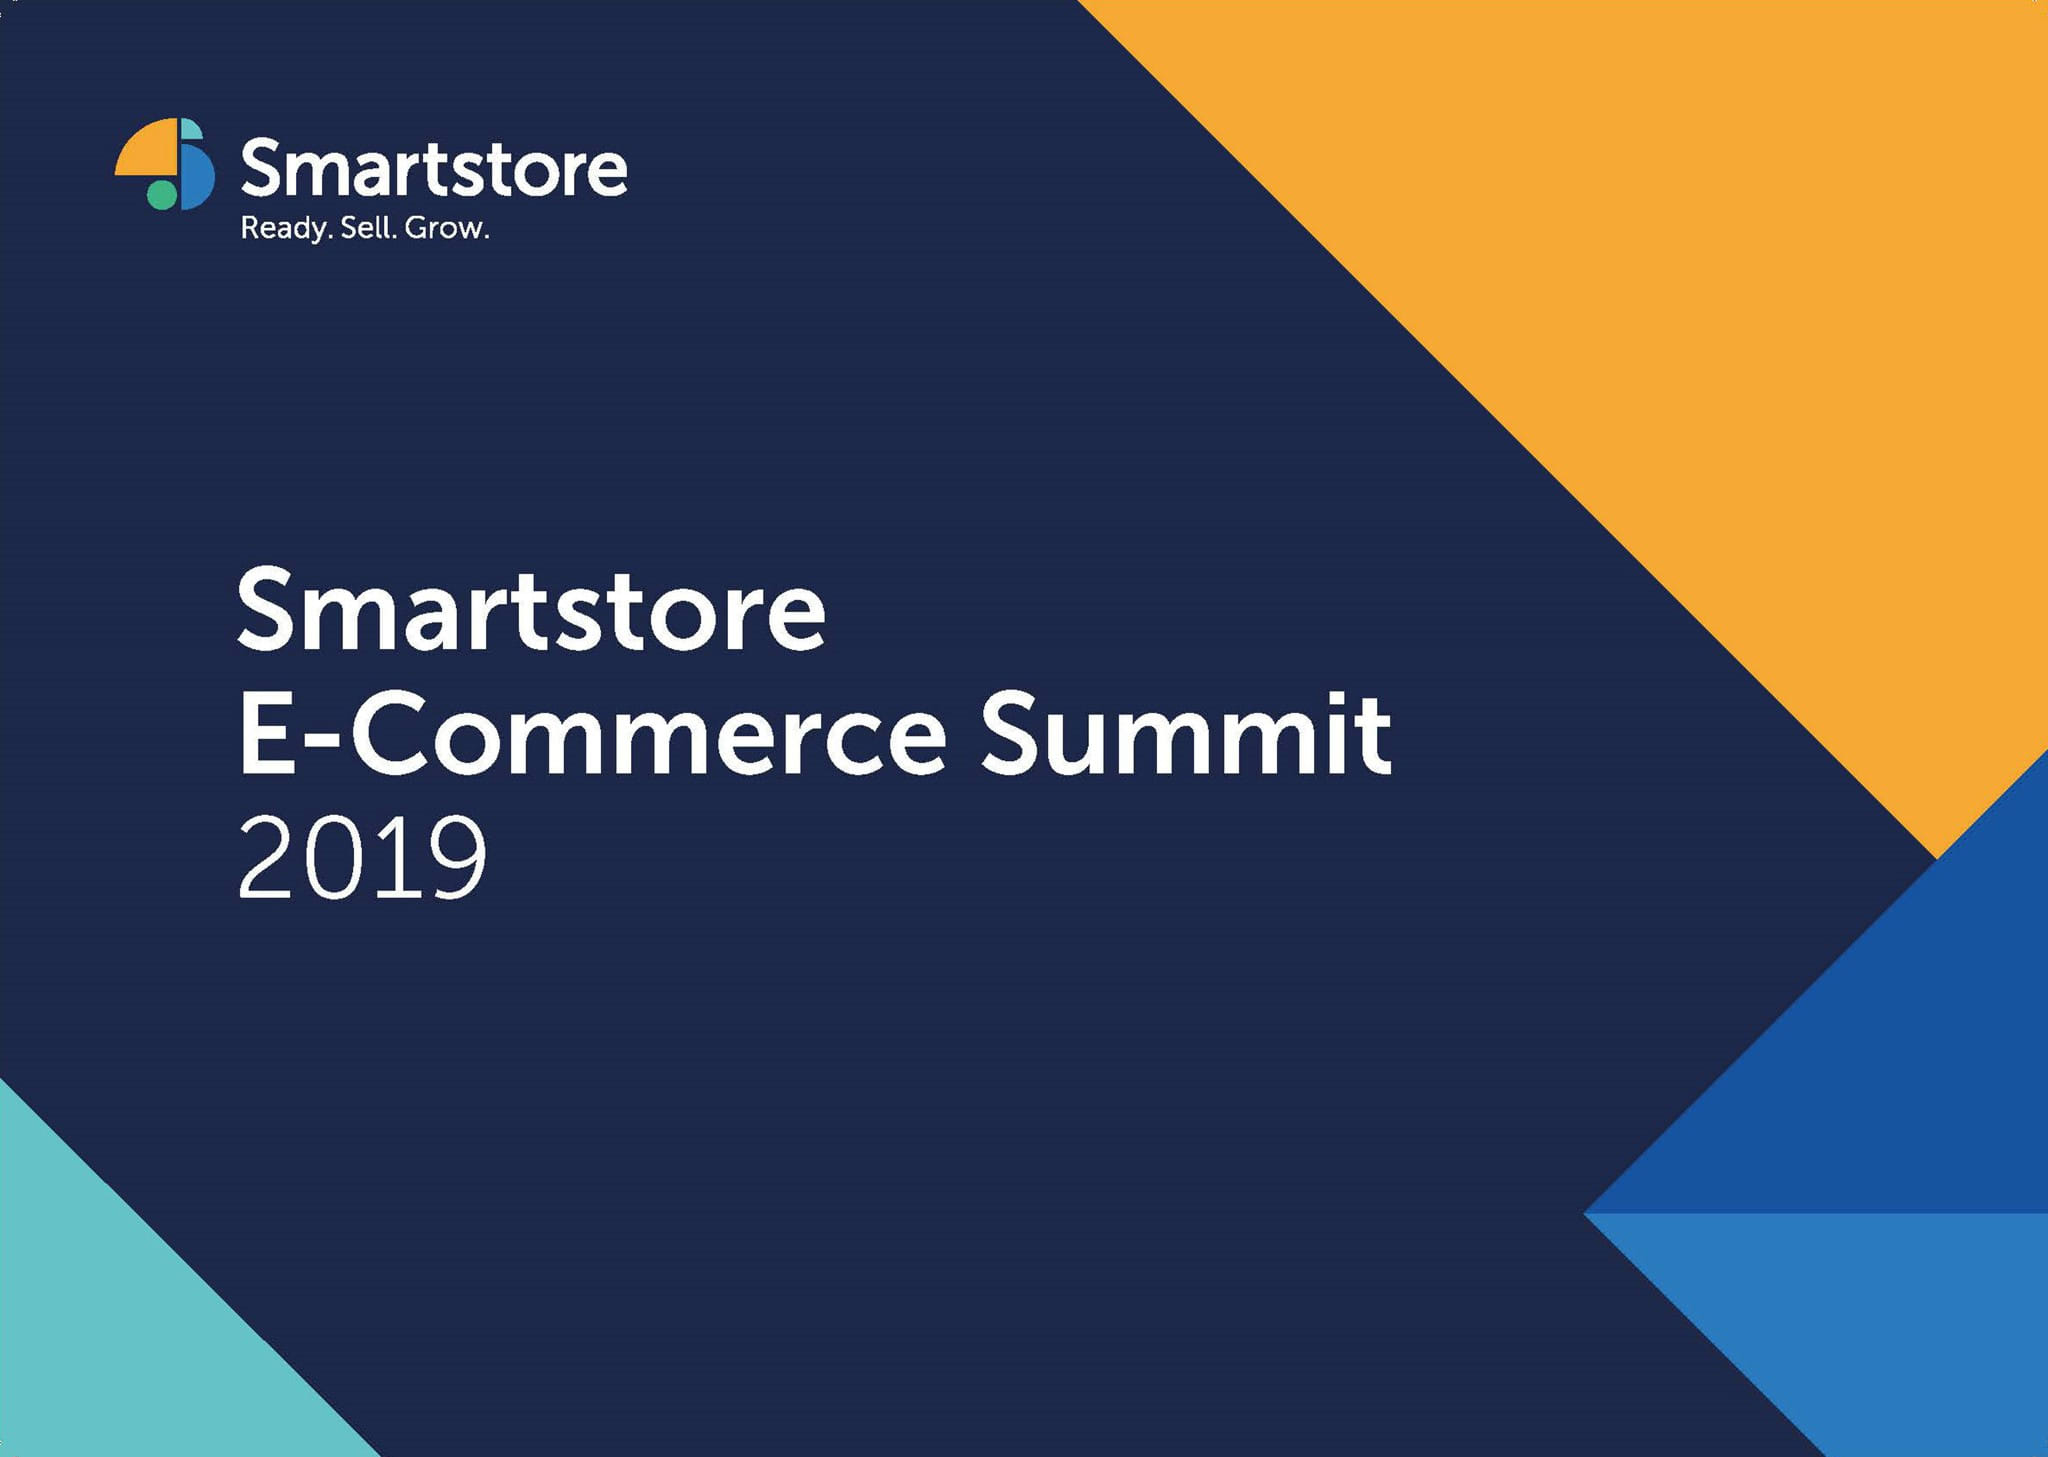 Smartstore E-Commerce Summit 2019